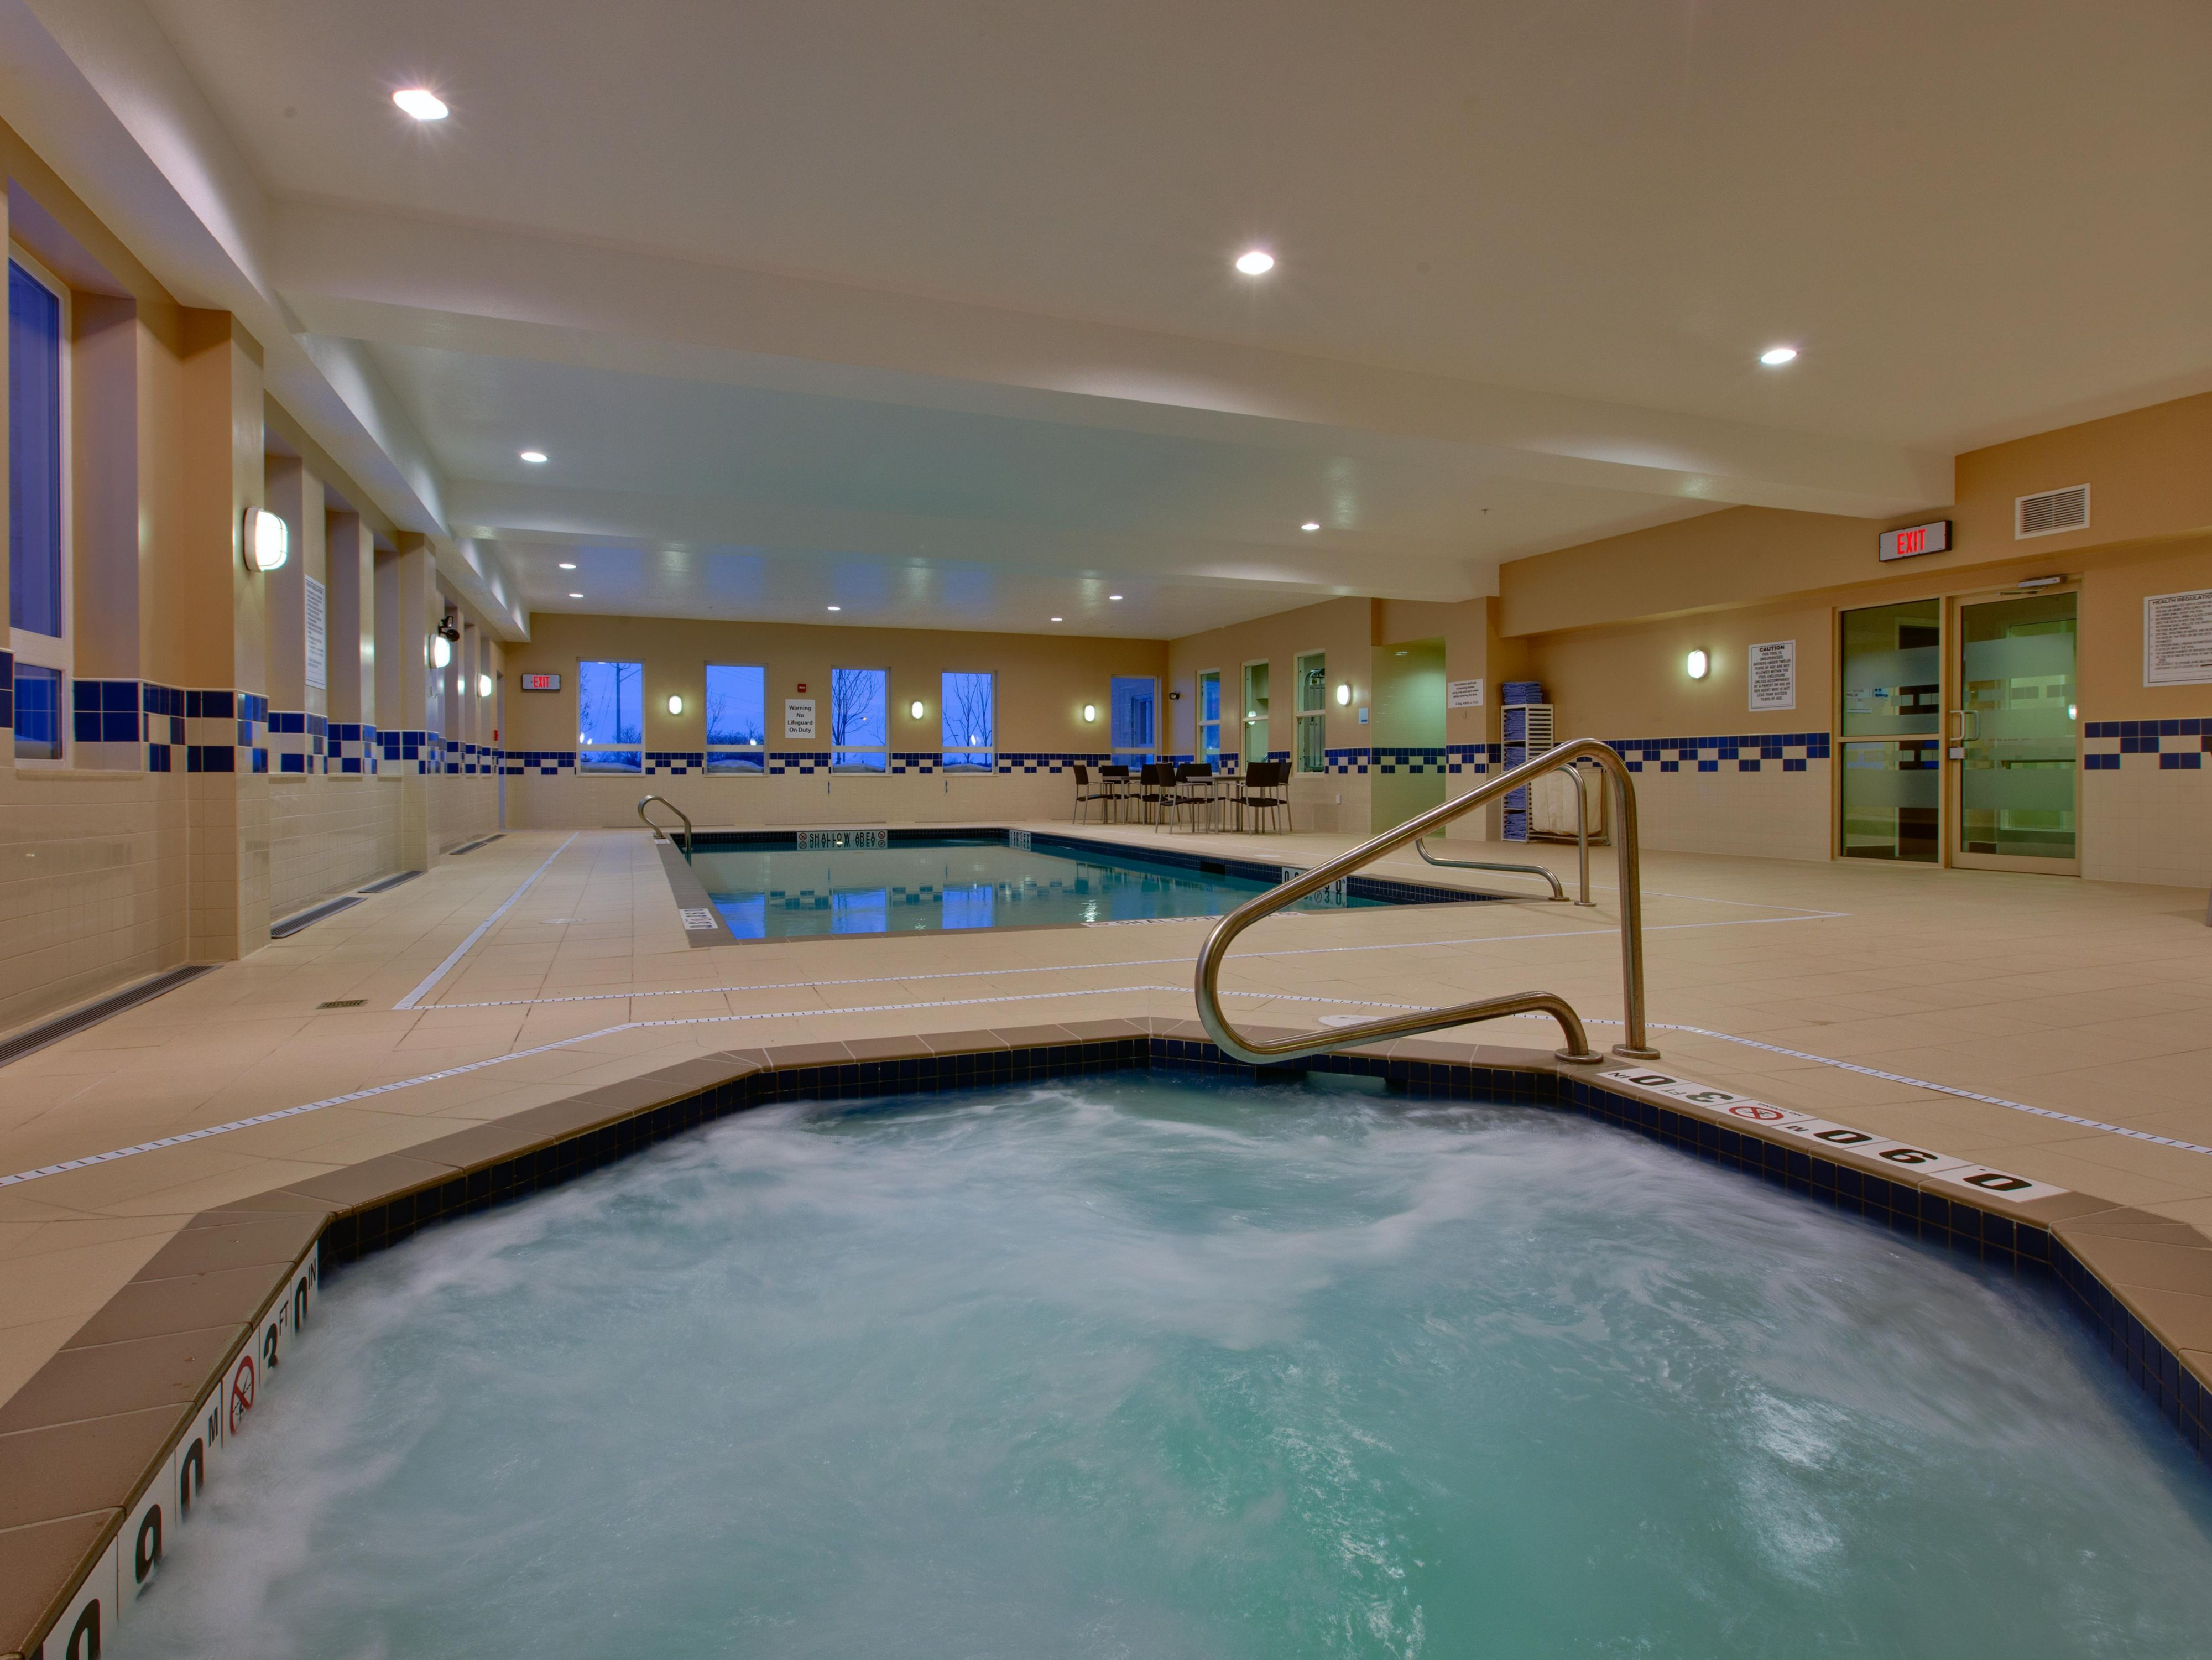 Either a warm dip in the pool or whirlpool to melt away your day.